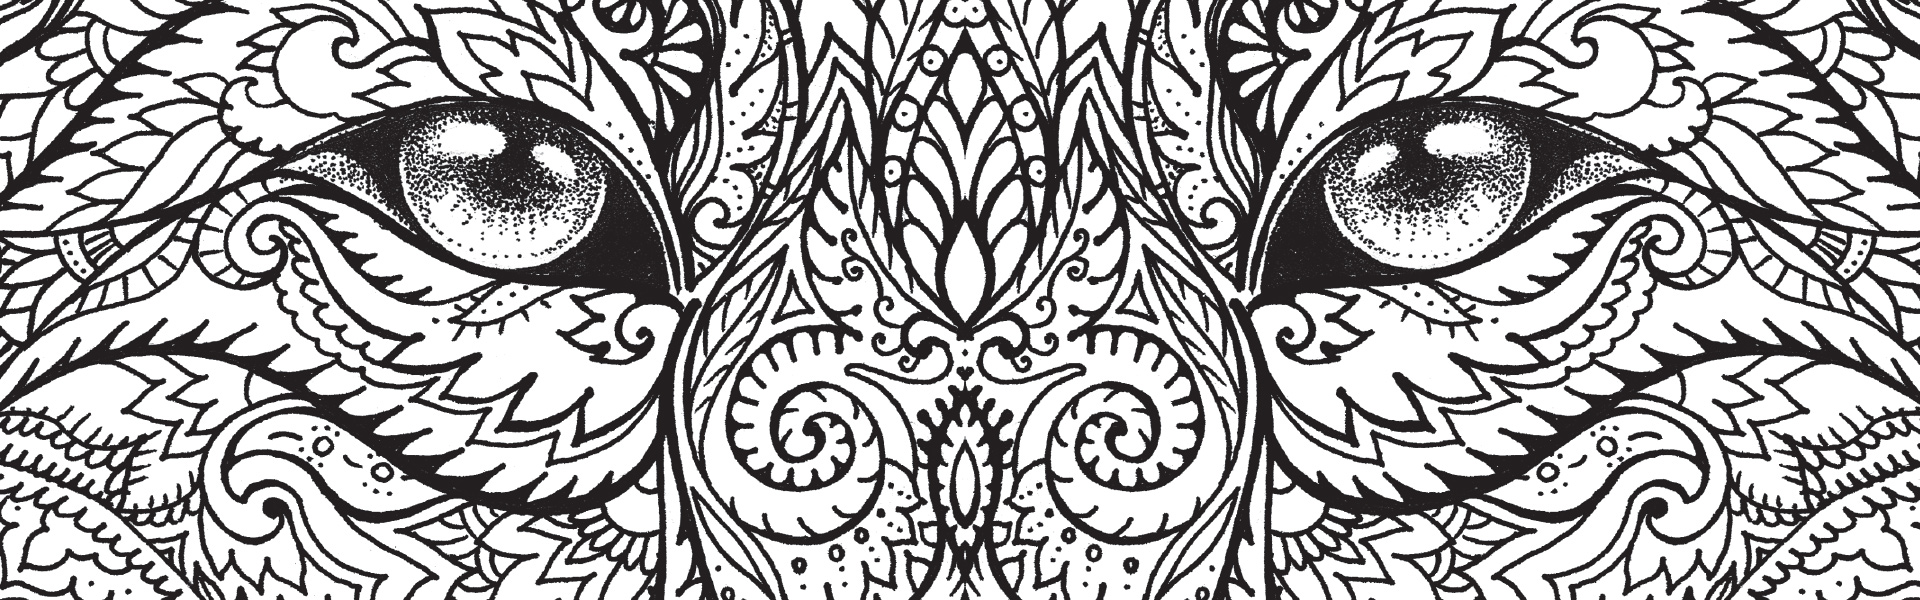 the macmillan jungle book colouring book free wolf pattern download